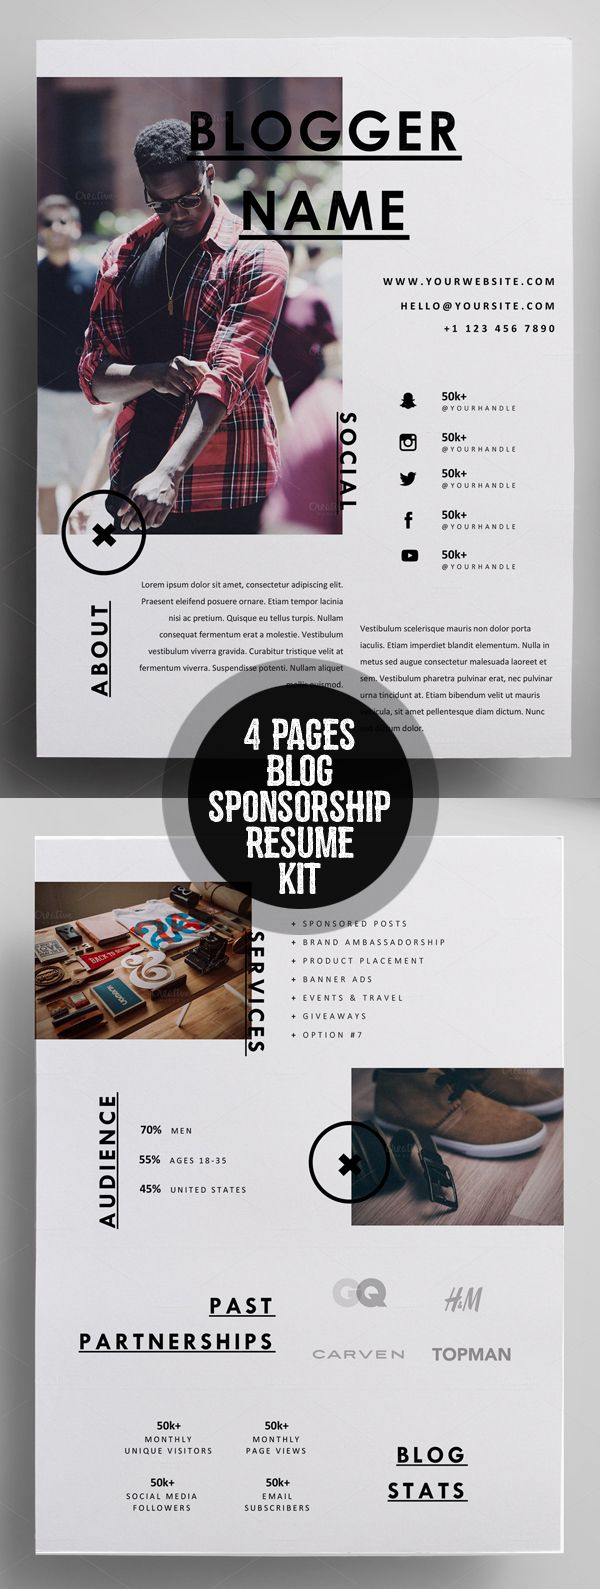 Creative 4 Pages Blog Sponsorship Kit Resume